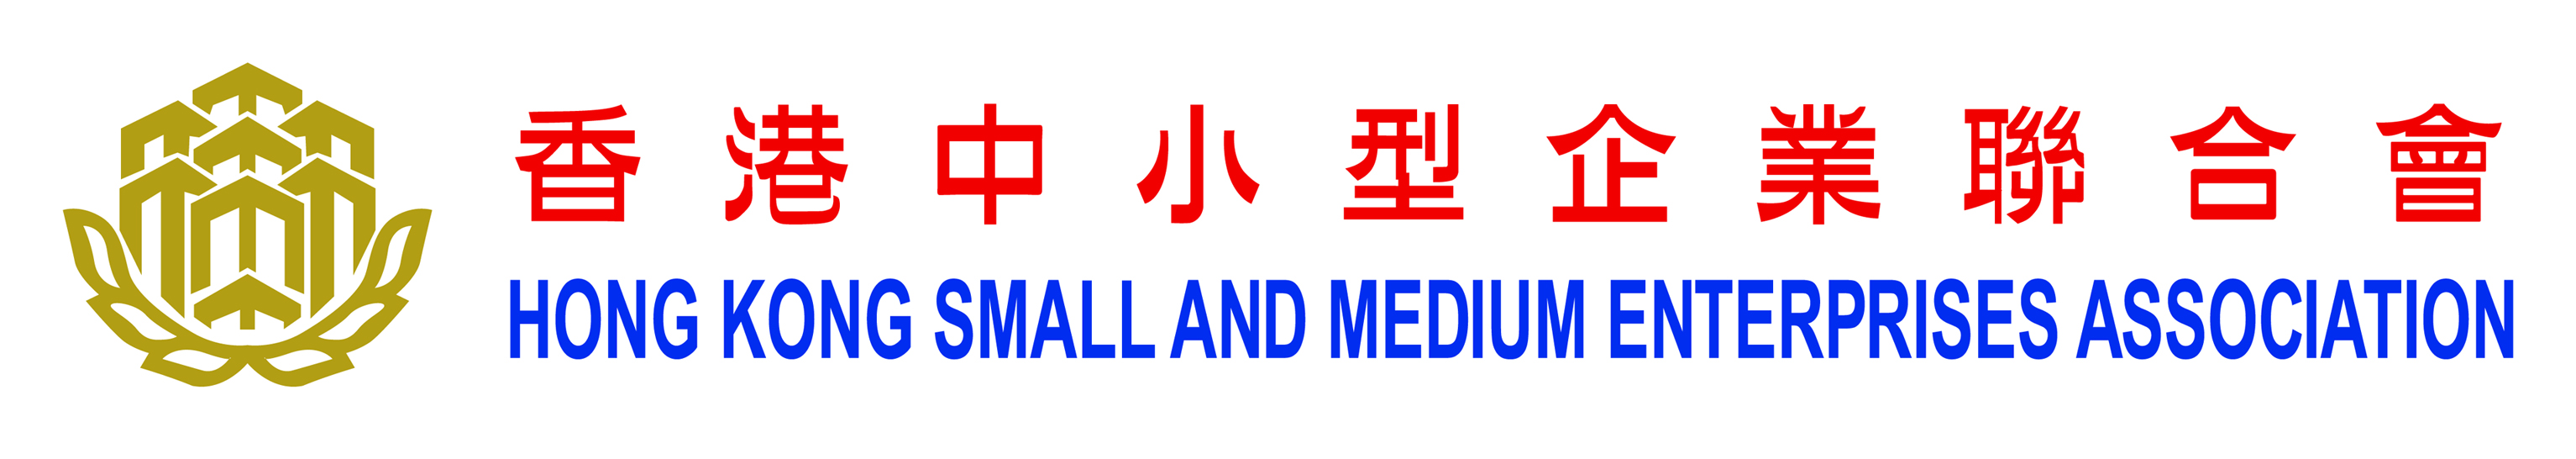 HK Smalland Medium Enterprises Associateion_logo